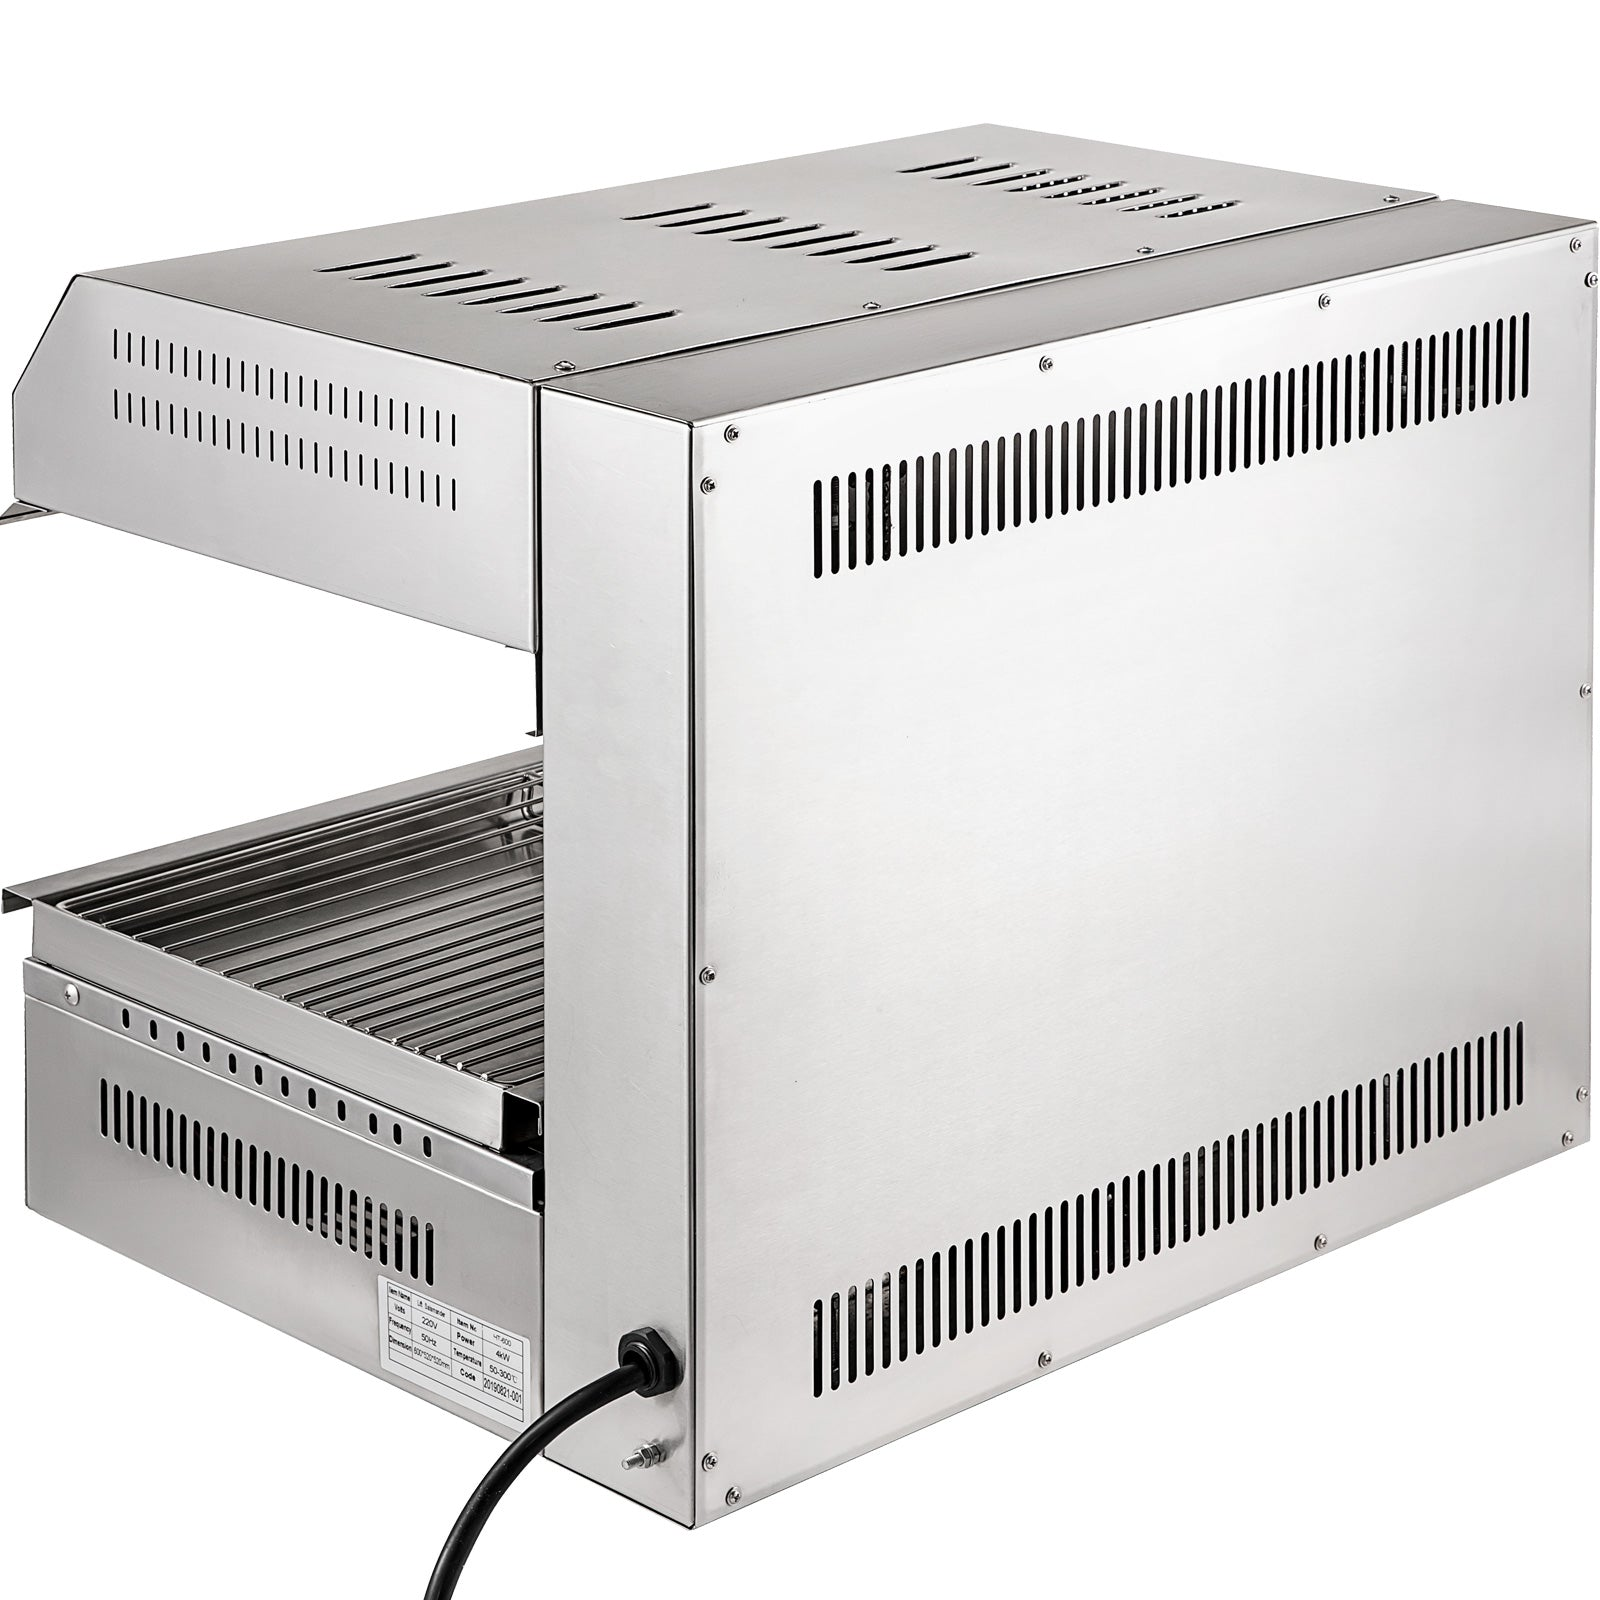 Cheese Melter Electric Cheesemelter 4000w Salamander Broiler Bbq Gril Countertop